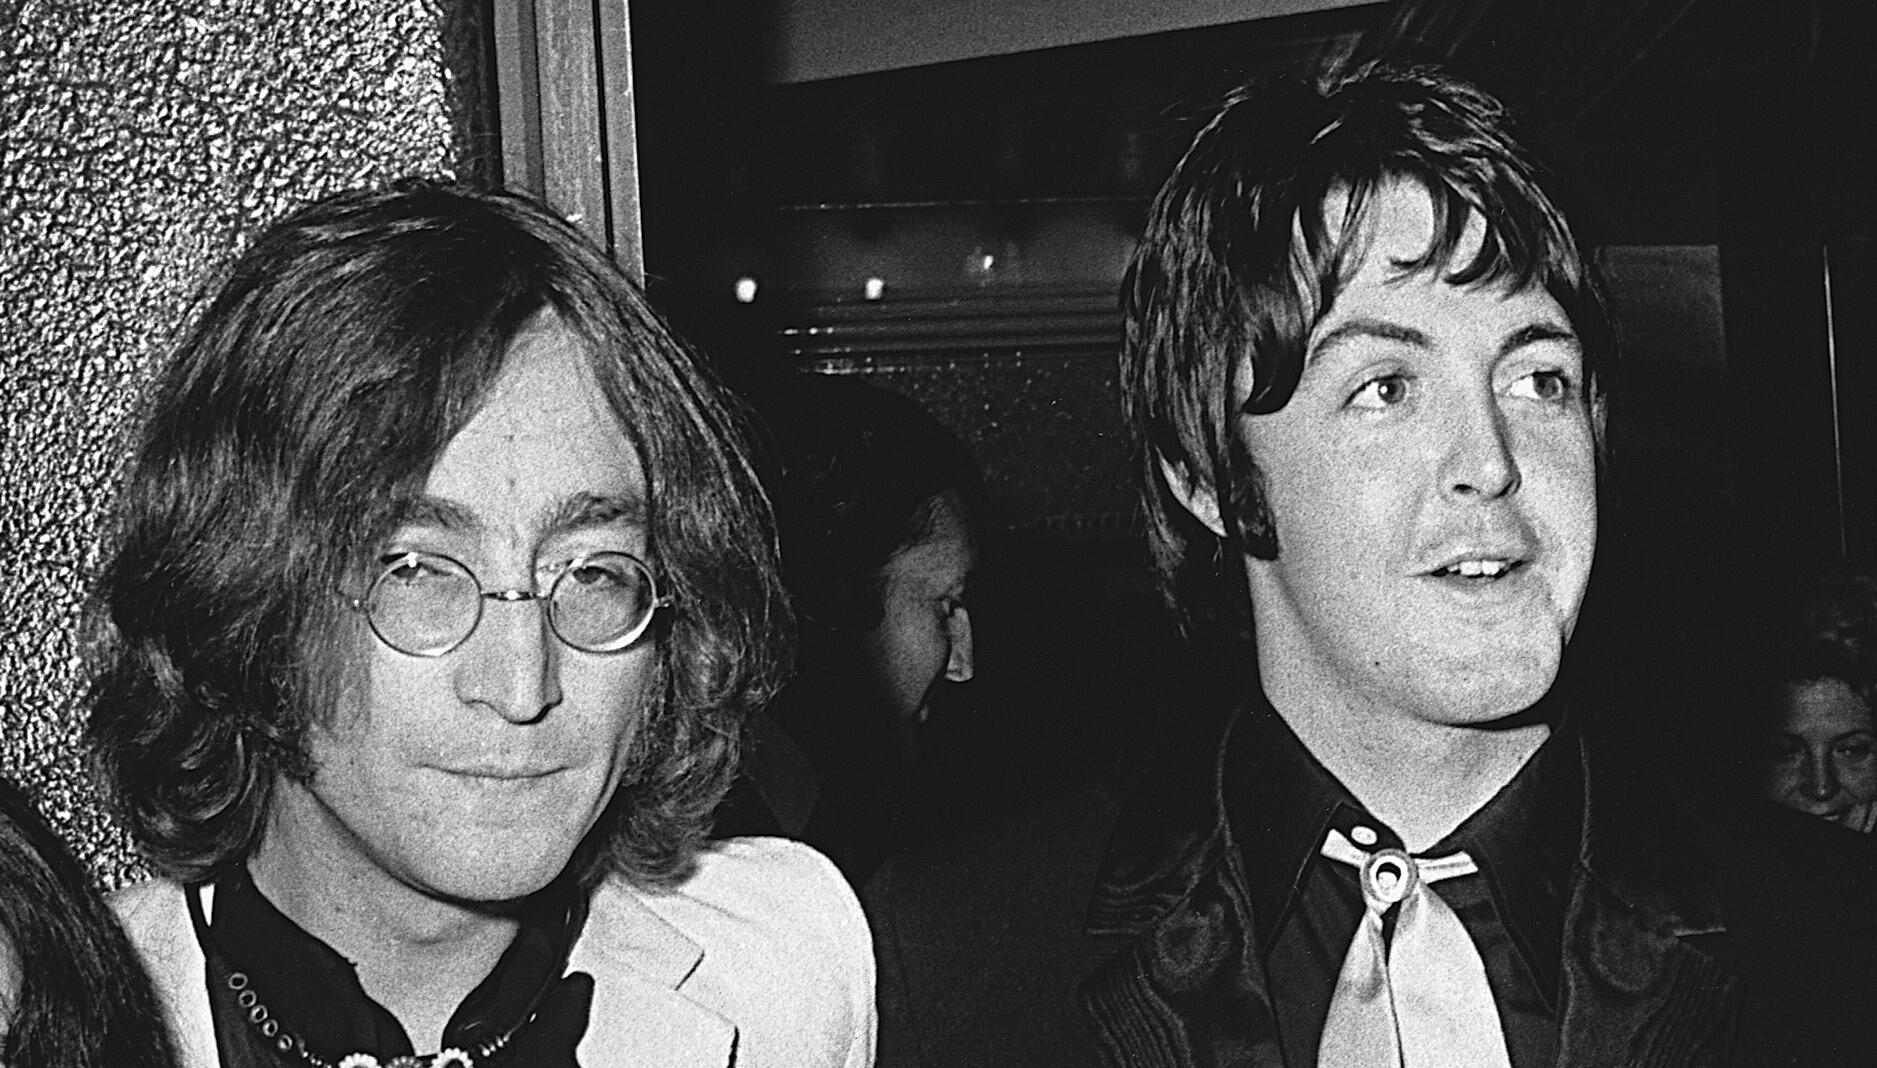 Paul McCartney, John Lennon 'Rescued Each Another' From Non-Music Careers